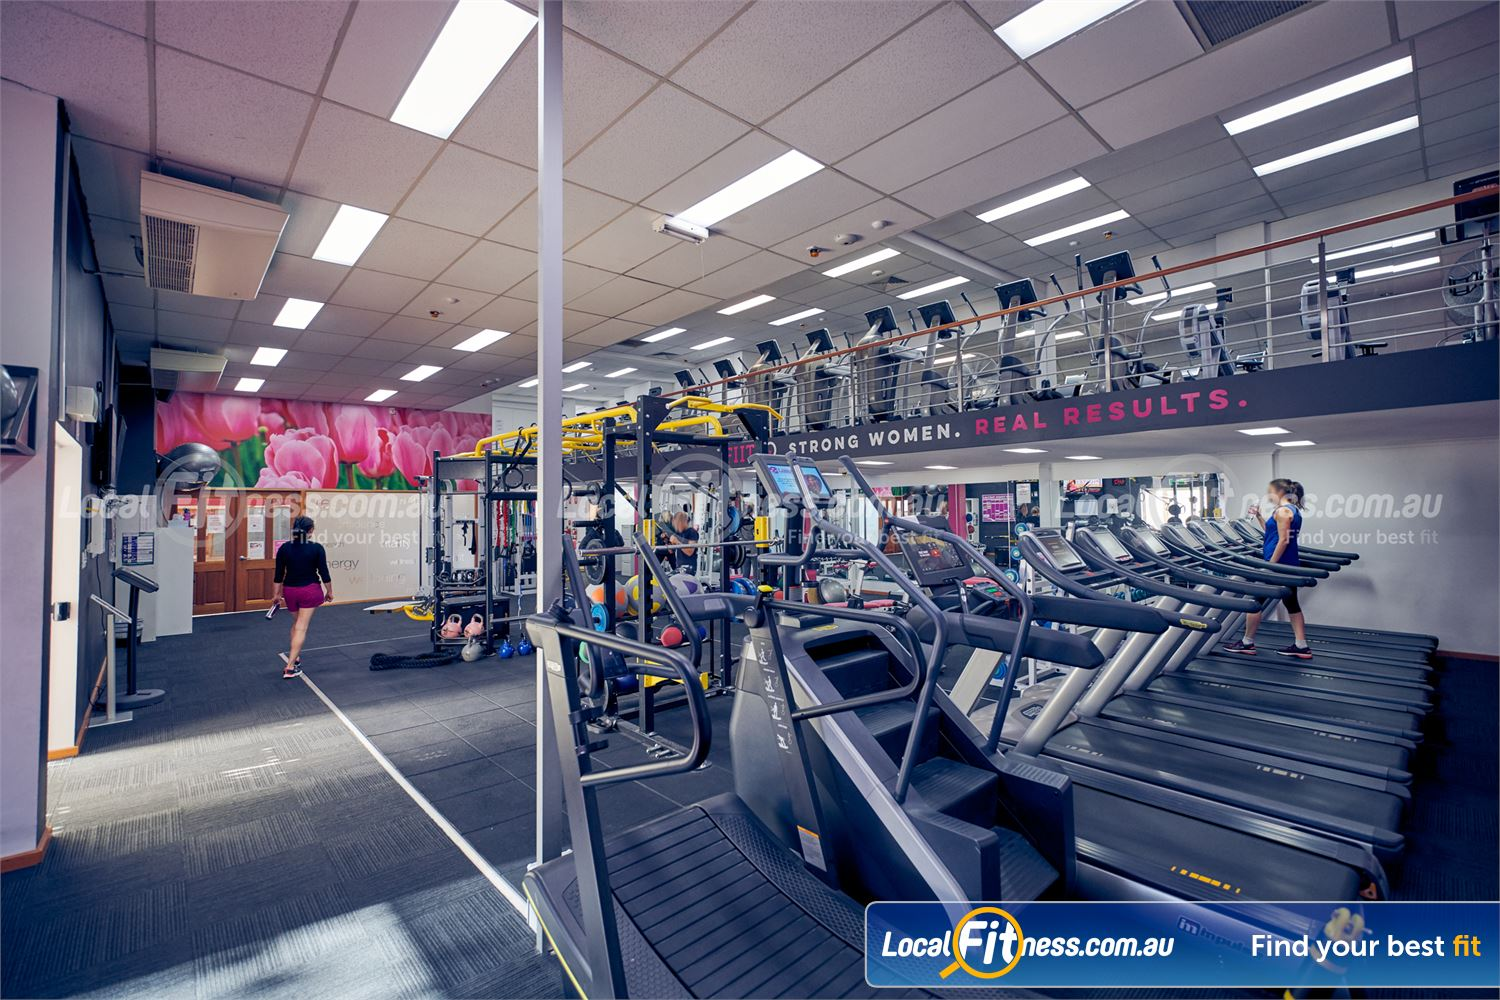 Fernwood Fitness Near Carlton North Our Fernwood Carlton 24 hour gym is open around the clock. 24 hours a day.